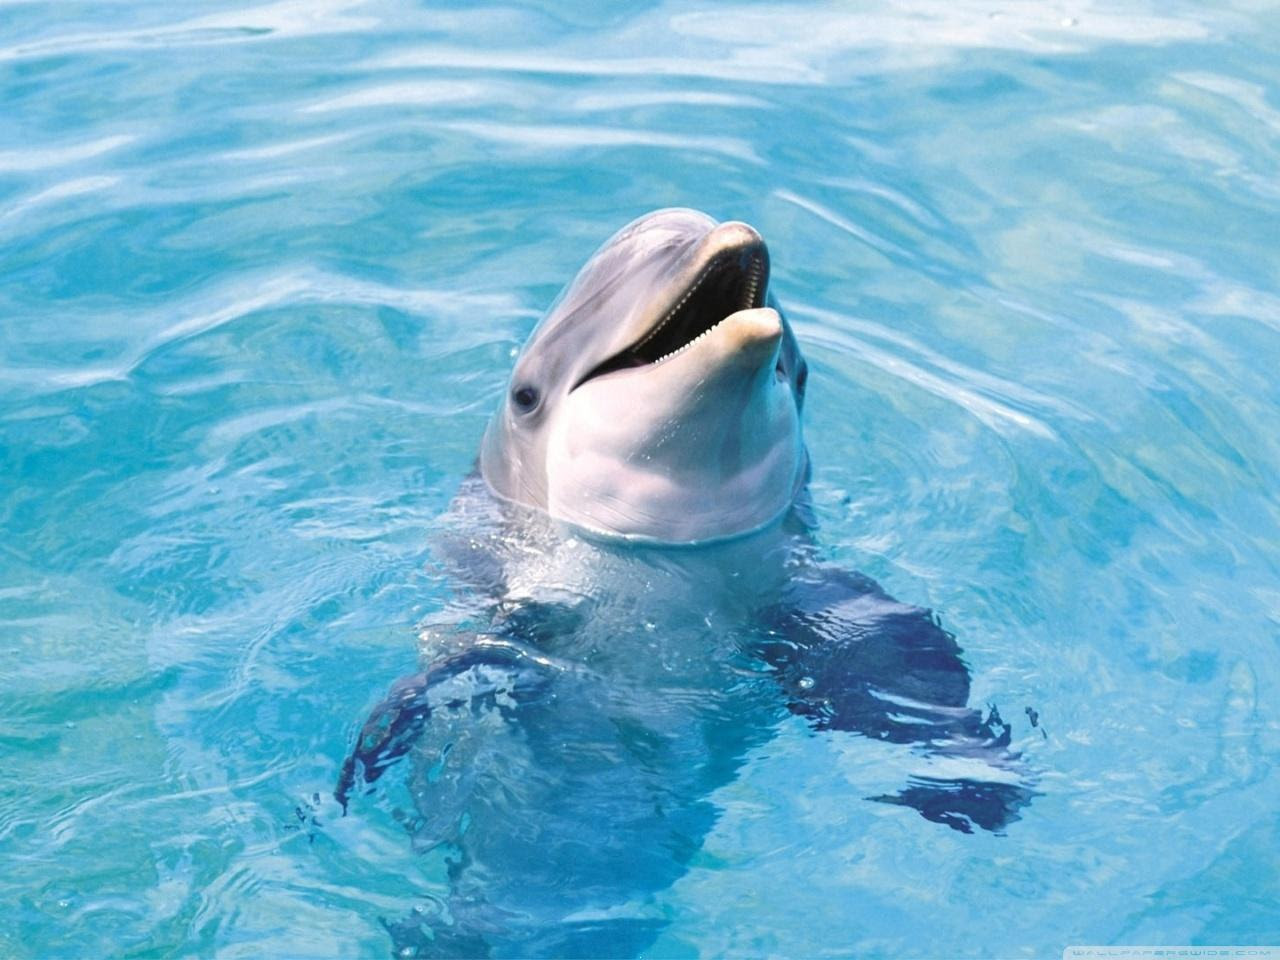 Download Dolphin Hd Wallpaper Underwater World For Your Mobile